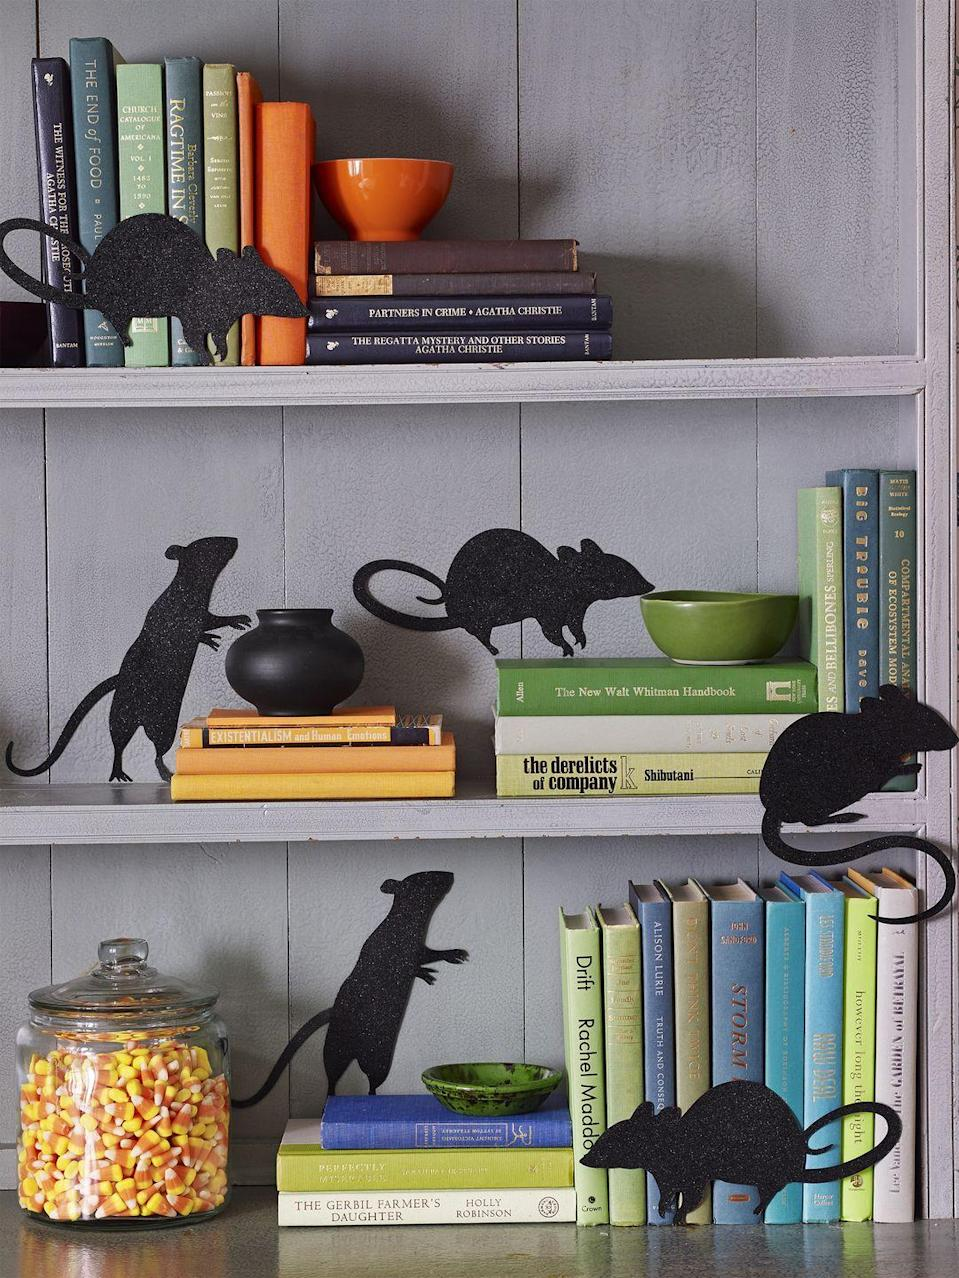 """<p>A stack of books is the perfect hiding place for (paper) mice. Print out silhouettes and trace onto black cardstock for extra-lifelike rodents. </p><p><em><a href=""""https://www.womansday.com/home/decorating/g1279/easy-halloween-decorations/"""" rel=""""nofollow noopener"""" target=""""_blank"""" data-ylk=""""slk:Get the tutorial at Woman's Day »"""" class=""""link rapid-noclick-resp"""">Get the tutorial at Woman's Day »</a></em> </p>"""